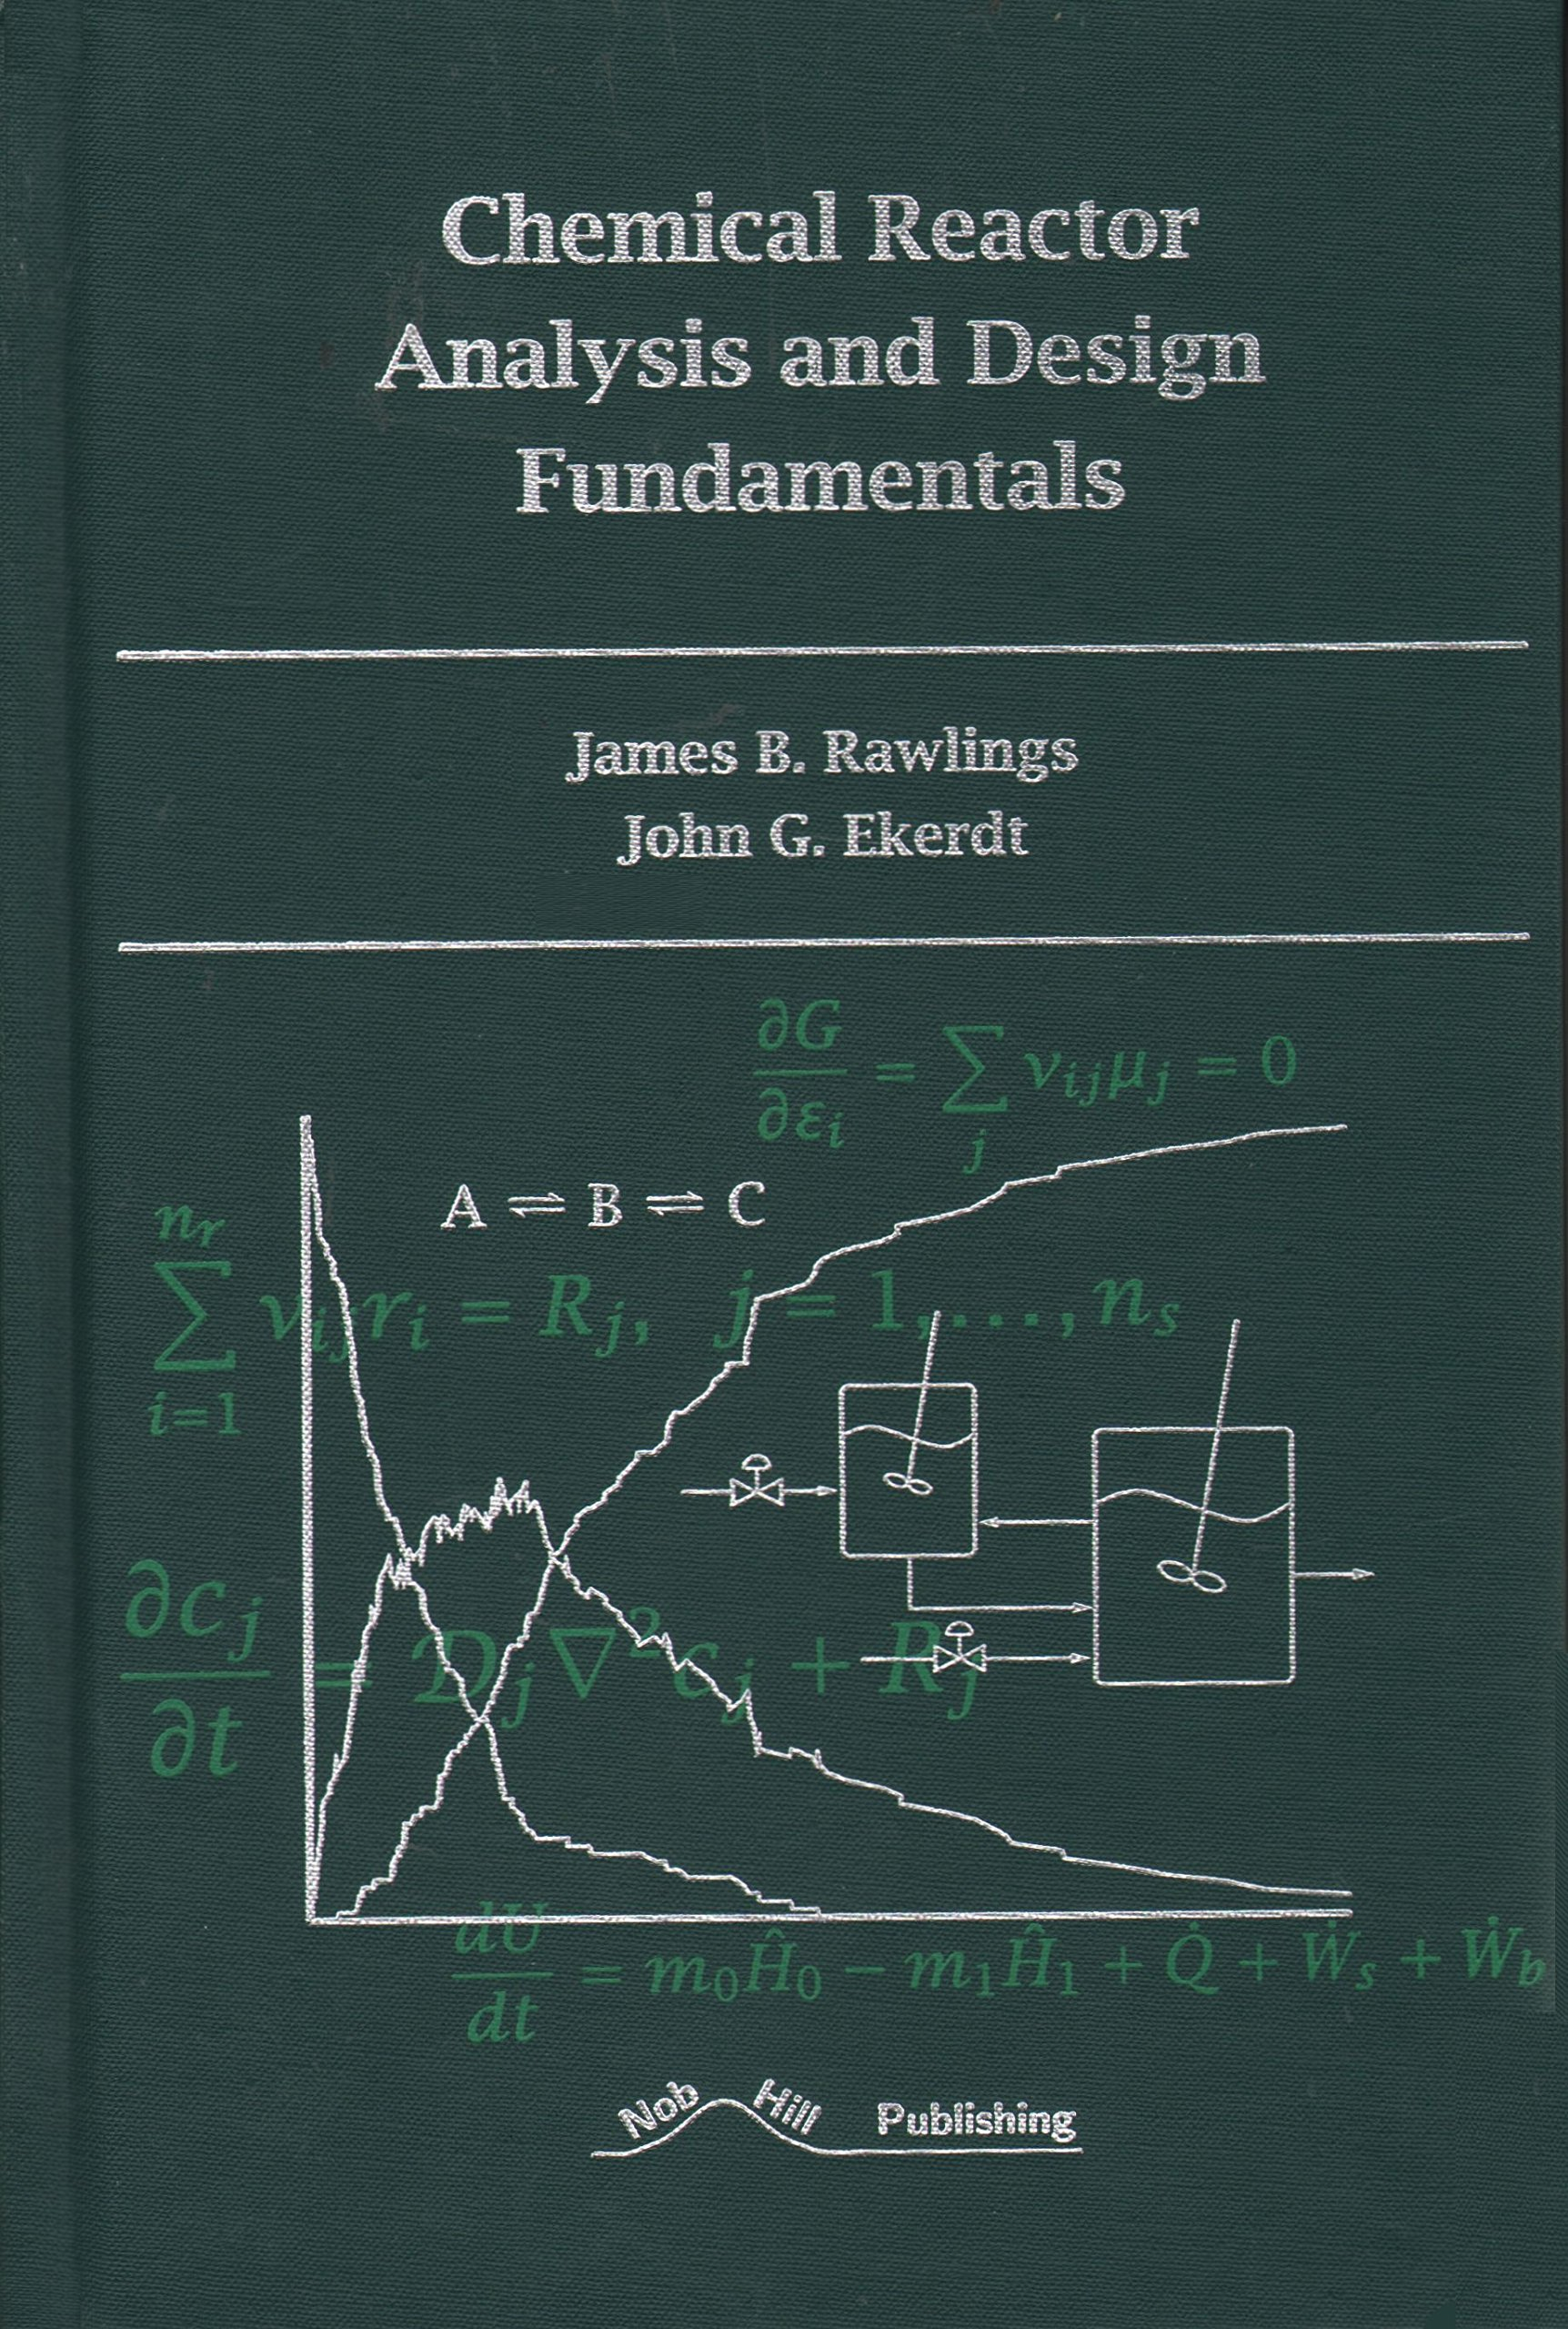 Chemical Reactor Analysis and Design Fundamentals - Rawlings